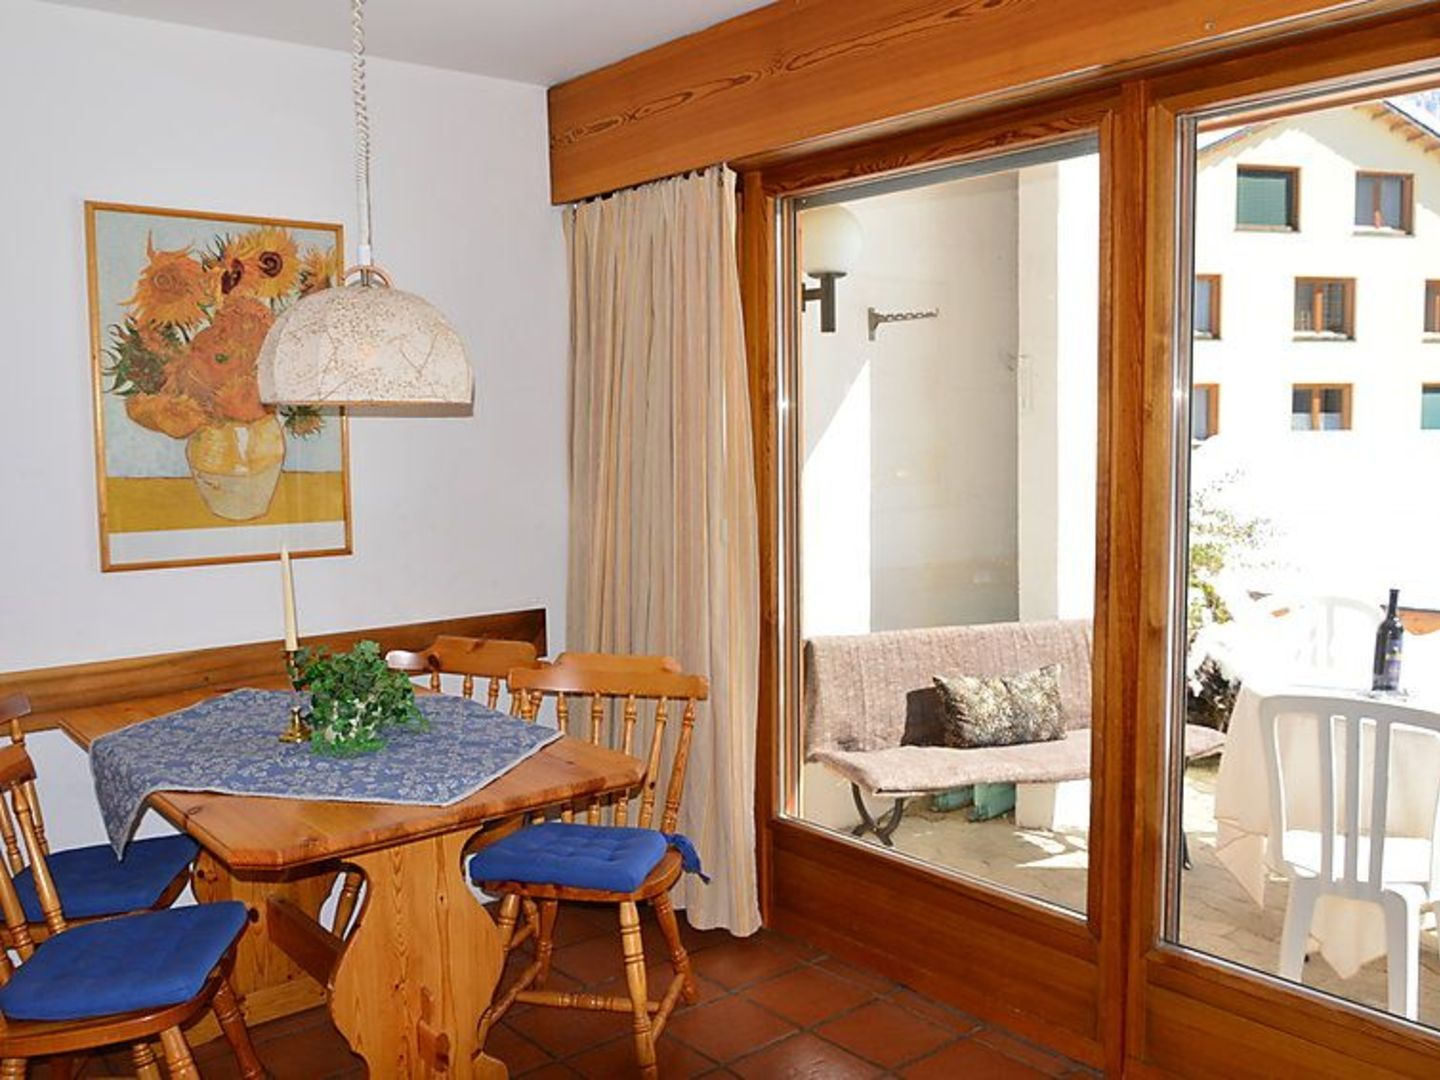 St. Moritz-Bad Beautiful small apartment